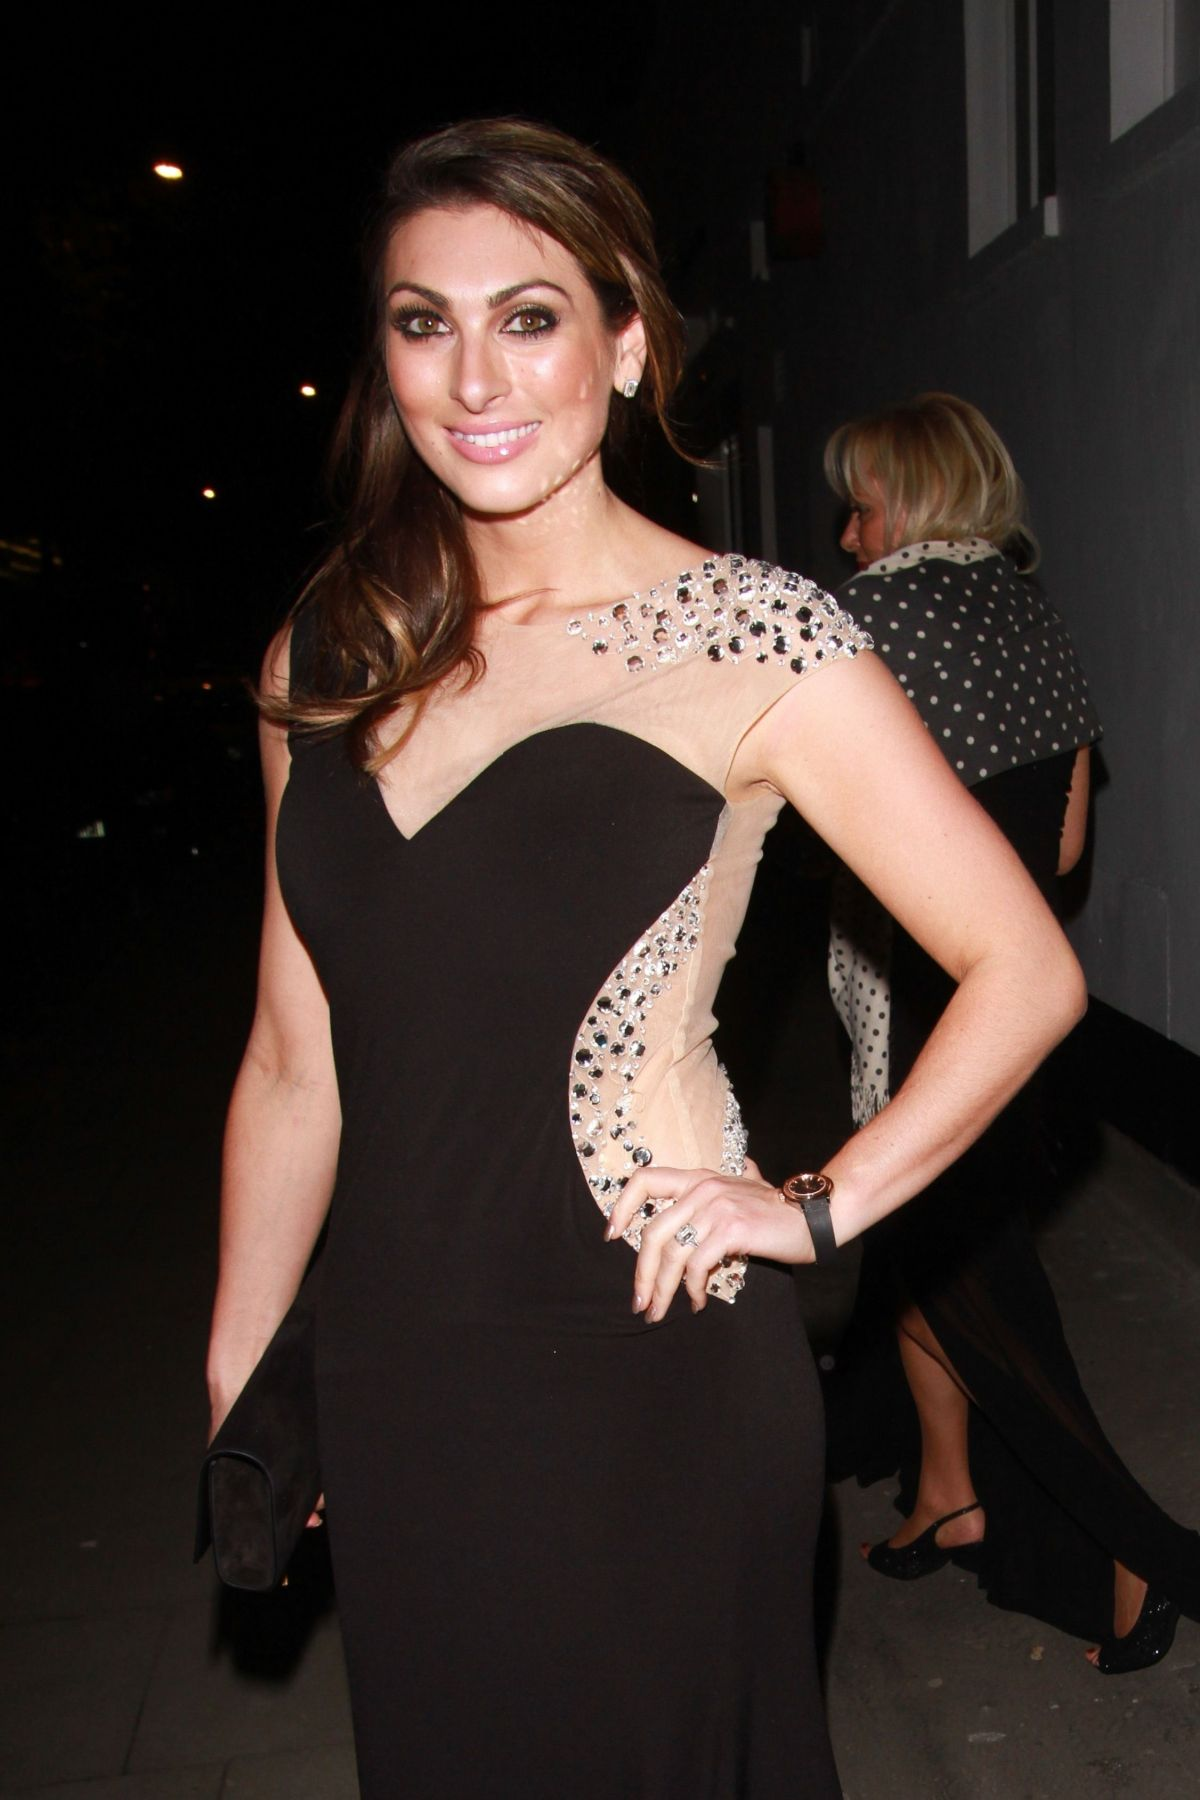 LUISA ZISSMAN Leaves Spearmint Rhino